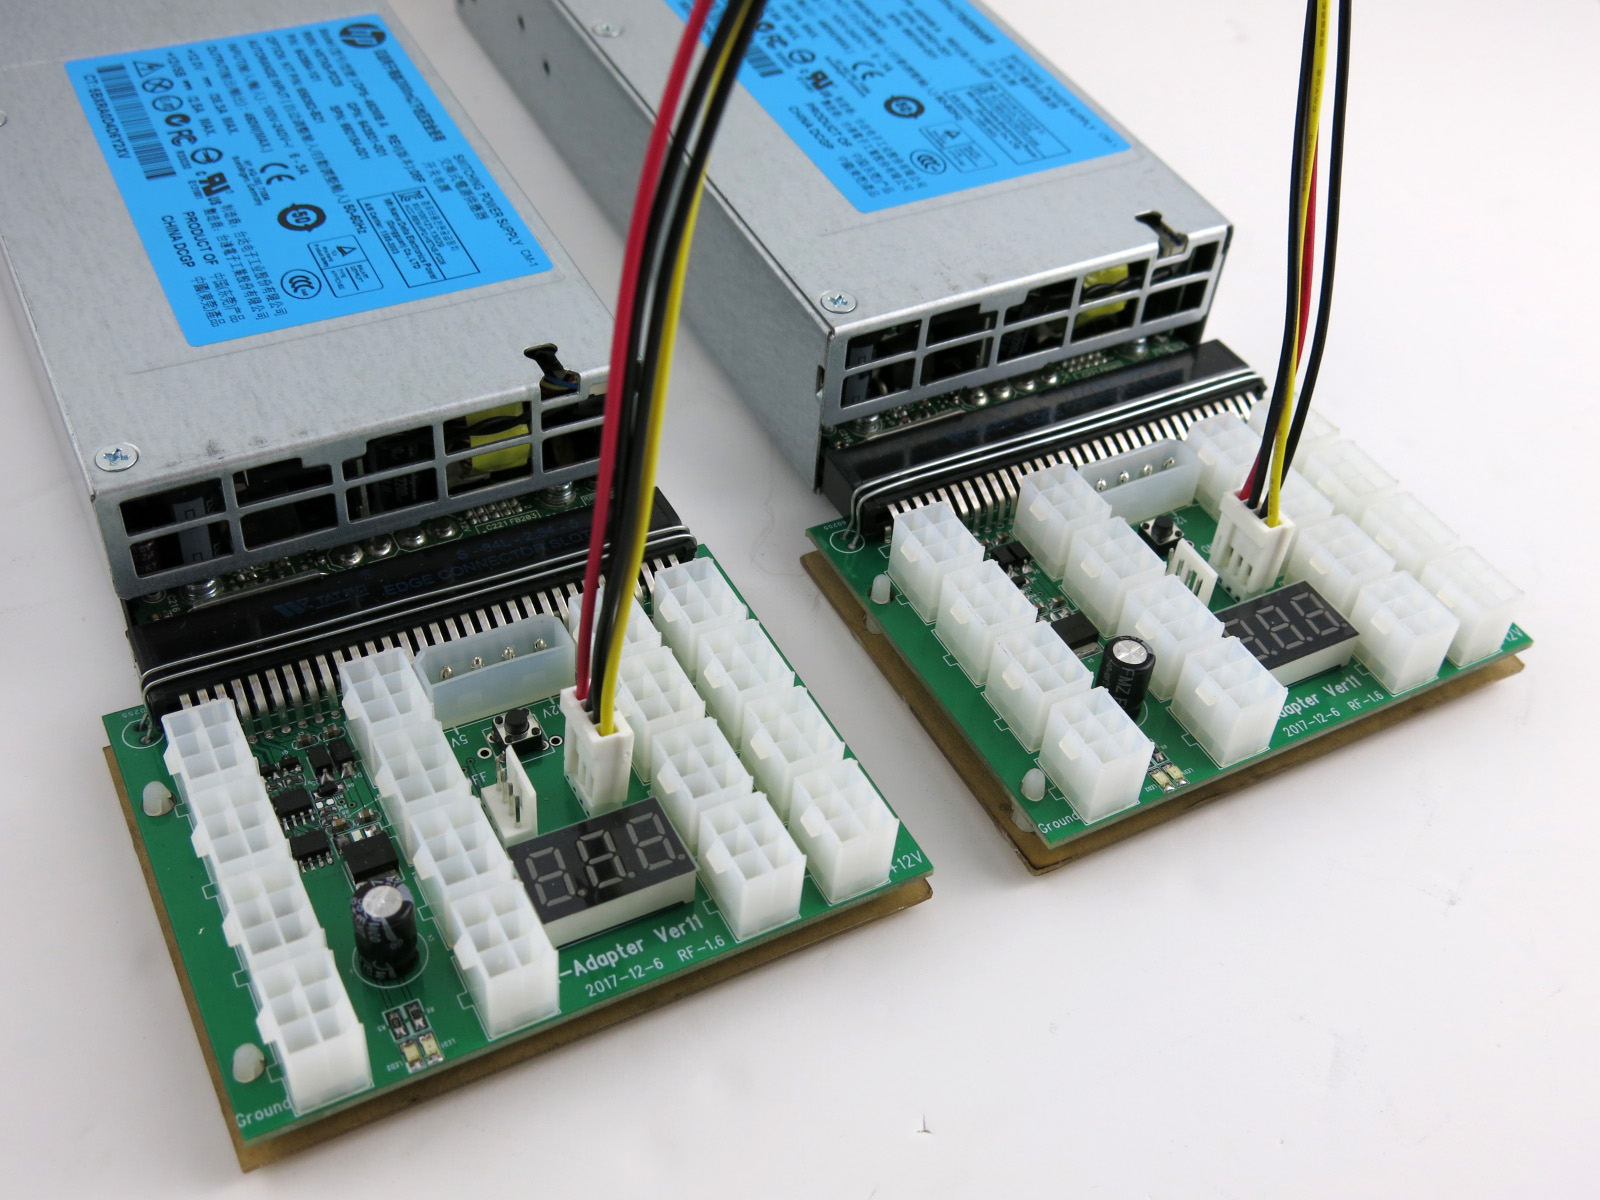 Interconnect sync cable attached to (2) X11 breakout boards to power off and on together